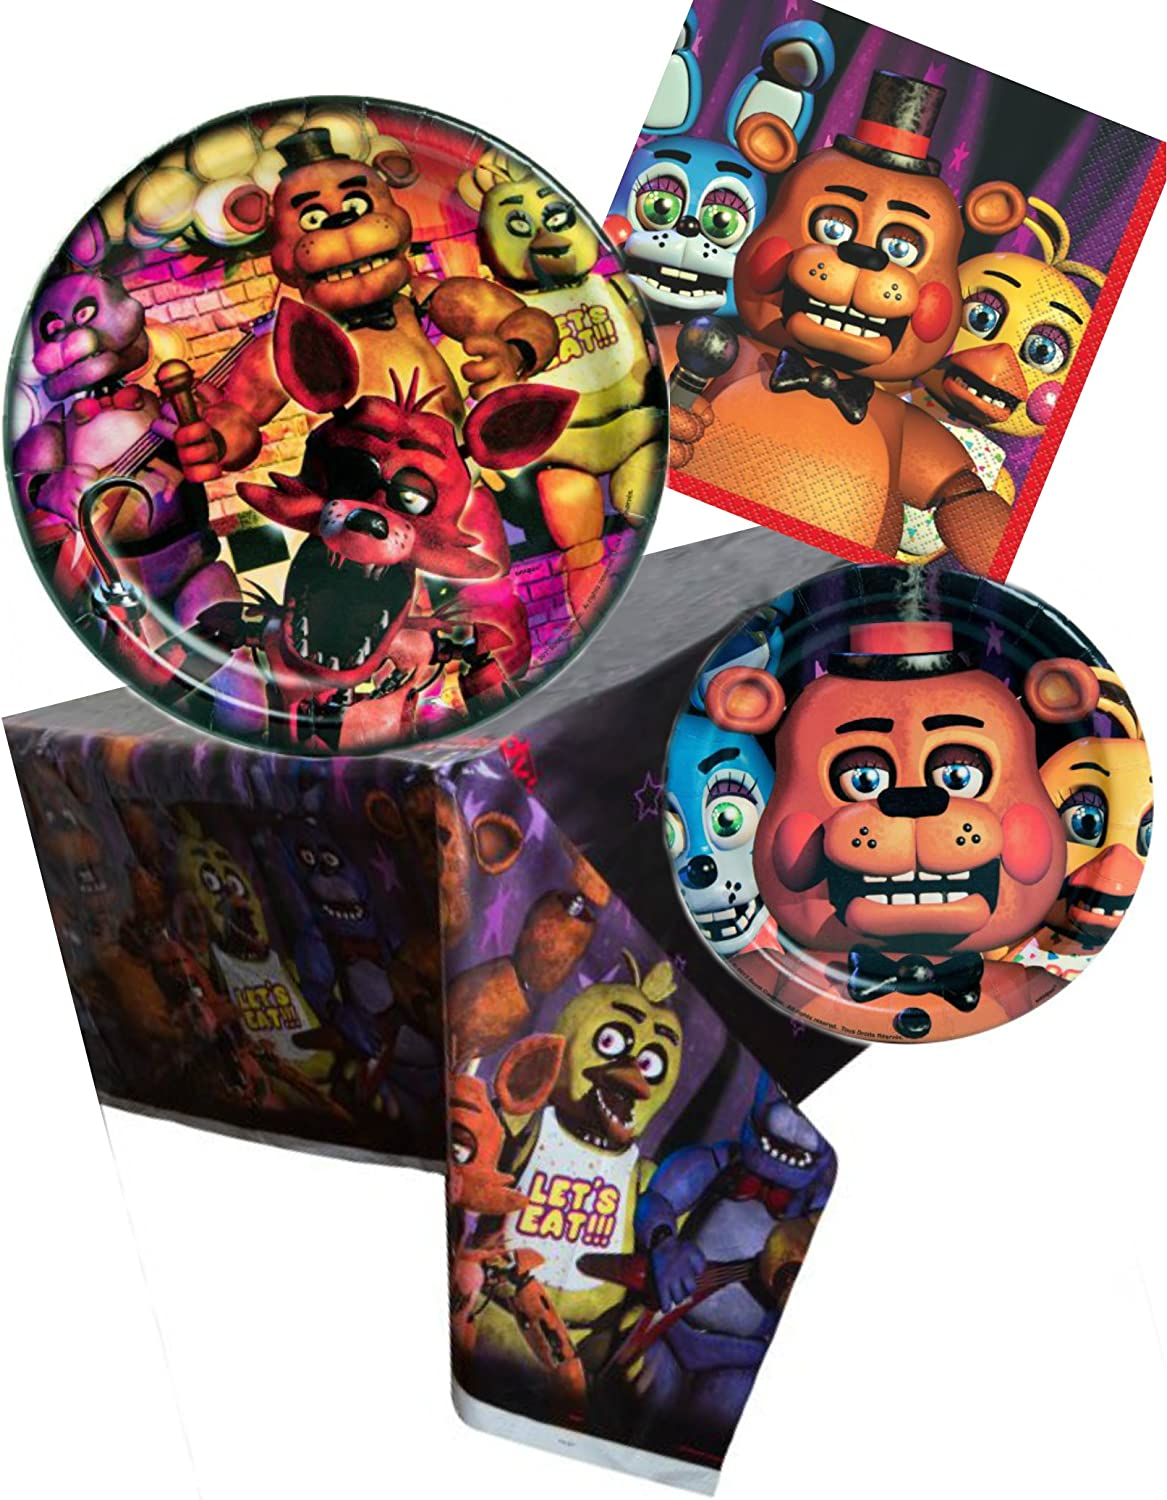 Amazon.com: Five Nights at Freddys - Juego de fiesta de ...